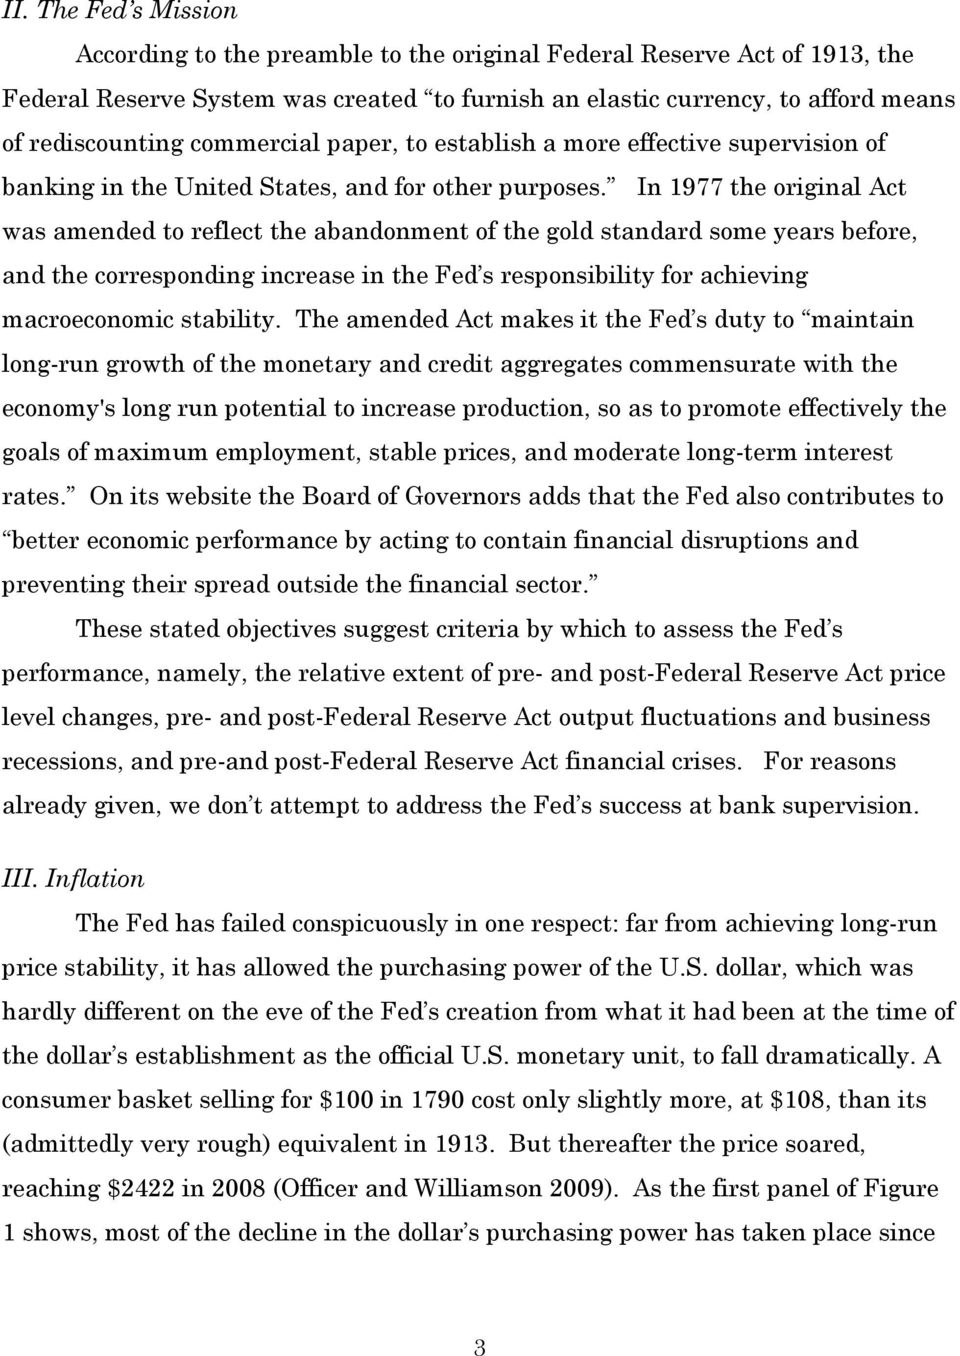 In 1977 the original Act was amended to reflect the abandonment of the gold standard some years before, and the corresponding increase in the Fed s responsibility for achieving macroeconomic